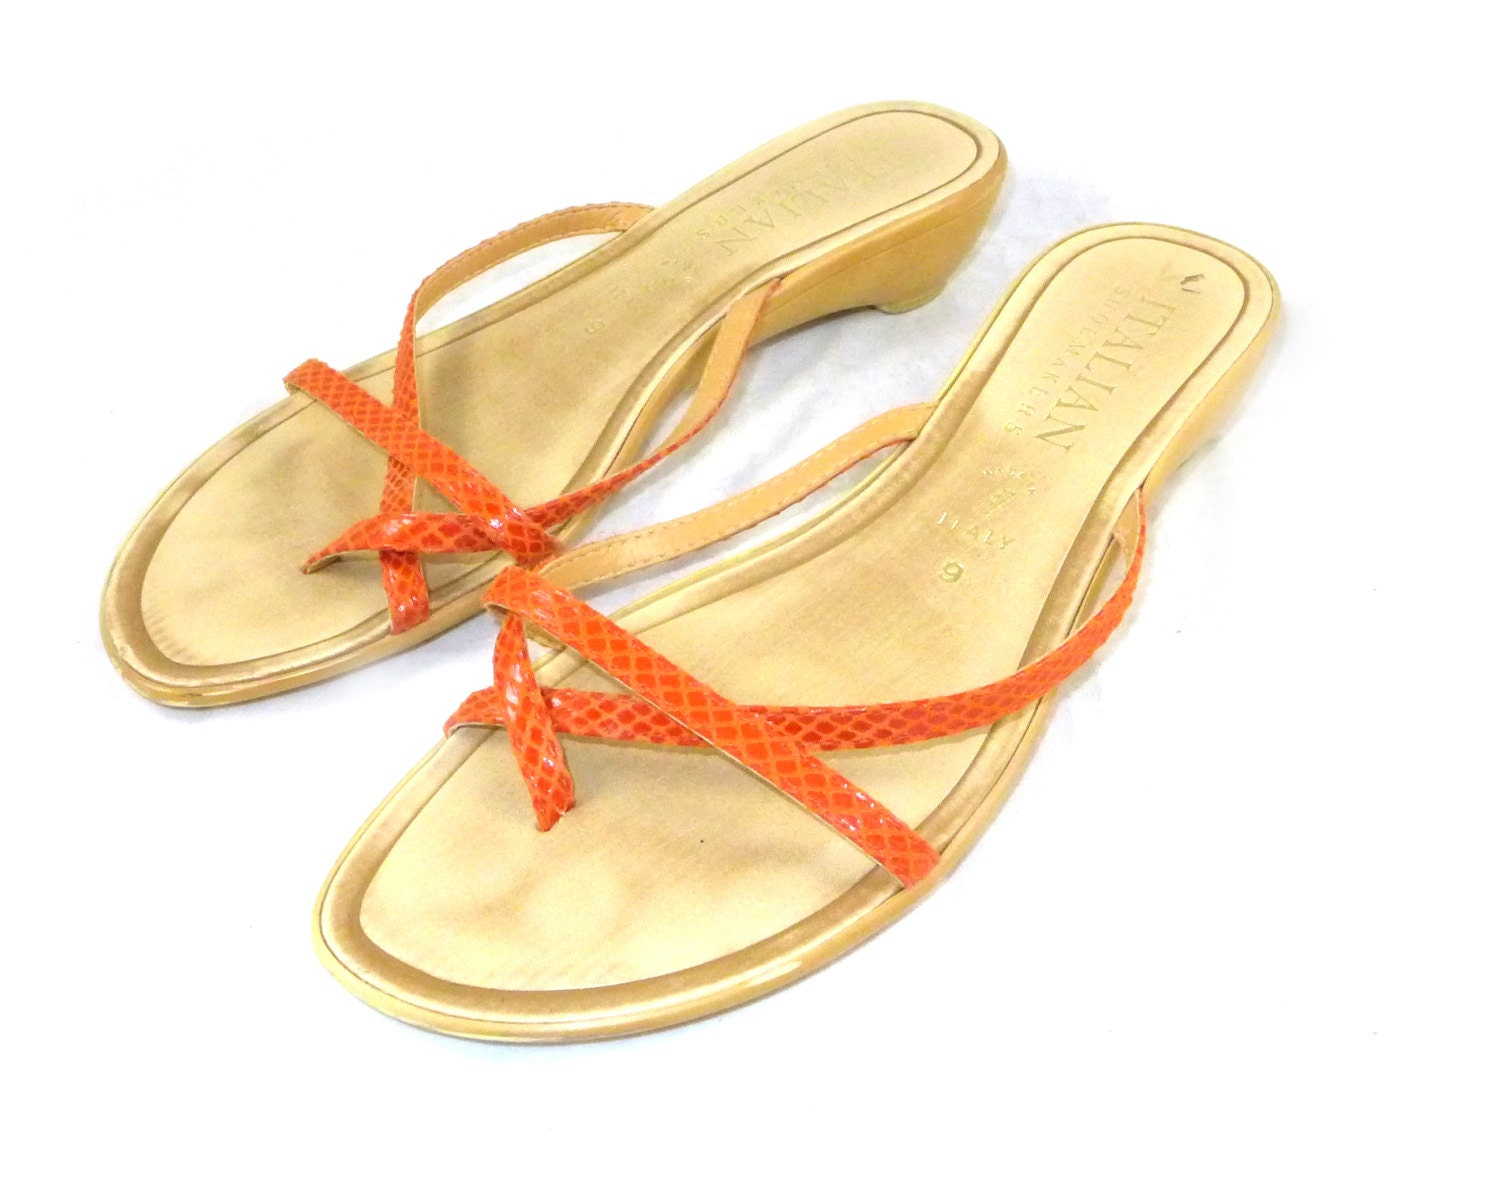 Orange leather snake-print thong flip flops / sandals - Italian shoemakers / vintage wedges shoes - CuratedCloset